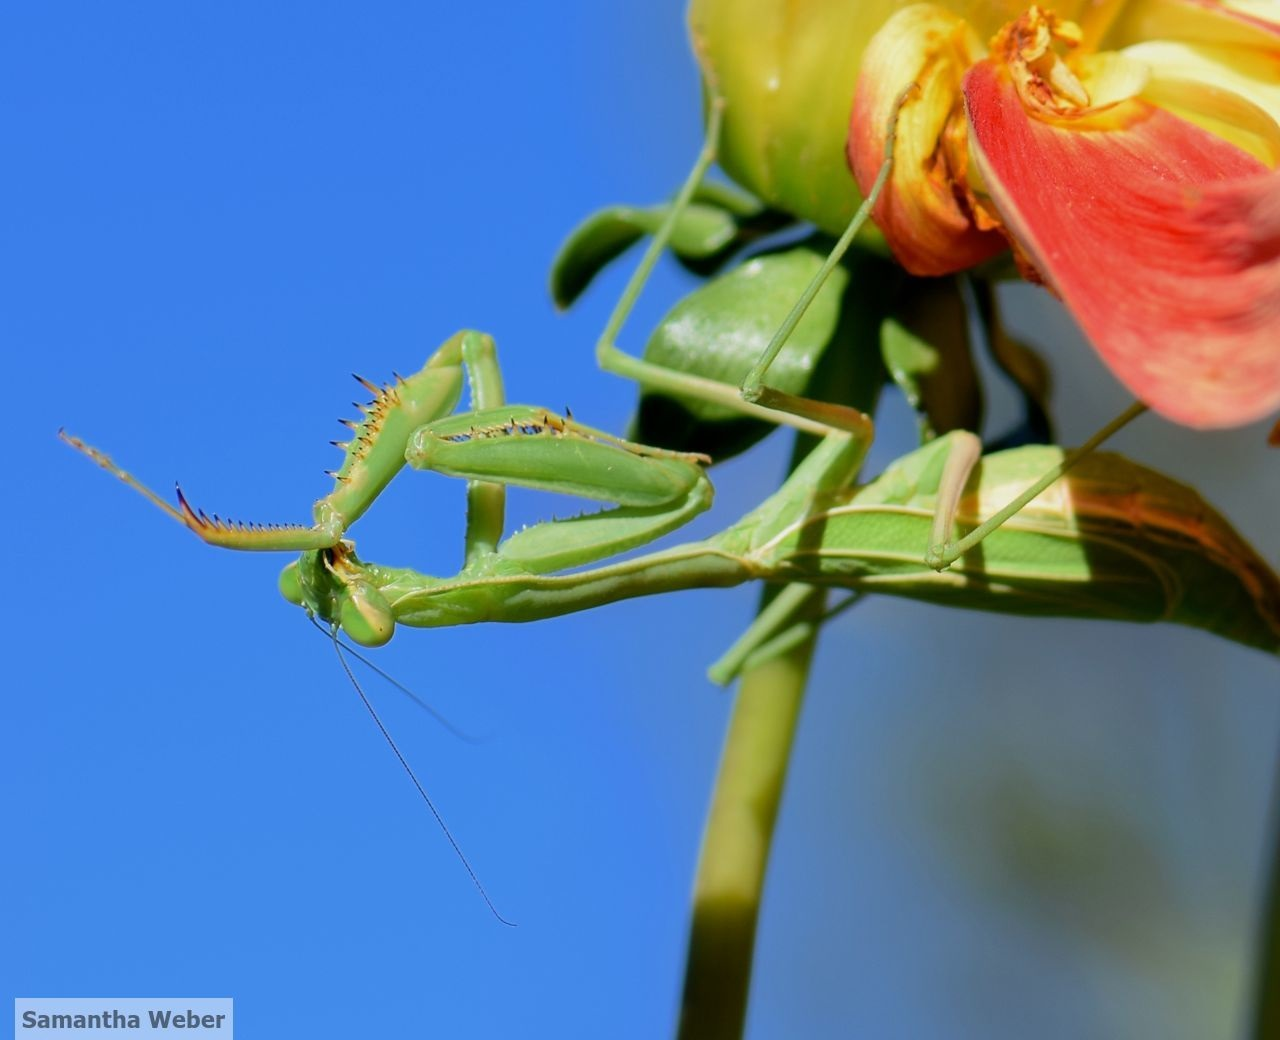 Mantid grooming while perched on a dahlia plant. Photograph by Samantha Weber 2015.